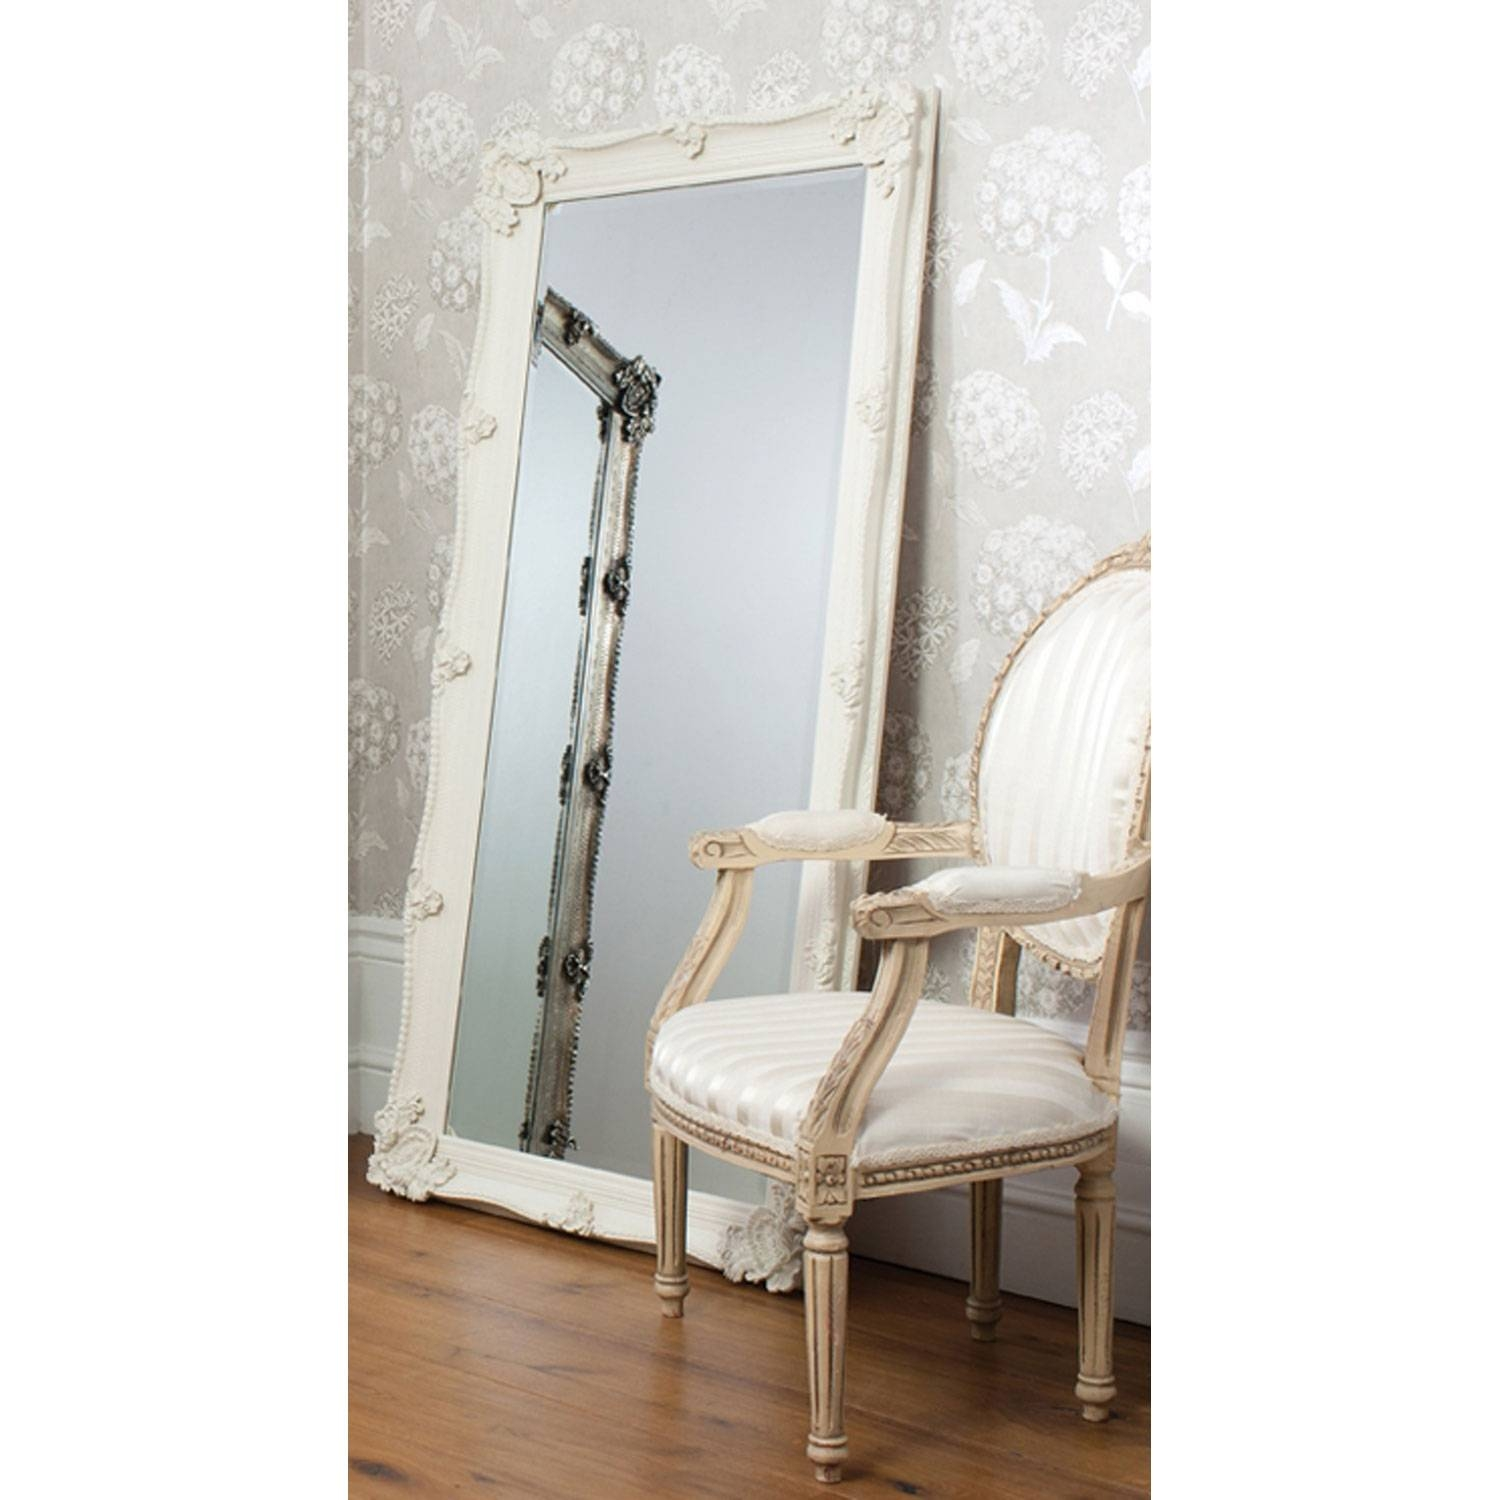 Large Free Standing Mirror 22 Awesome Exterior With Leaning Floor throughout Cream Standing Mirrors (Image 23 of 25)